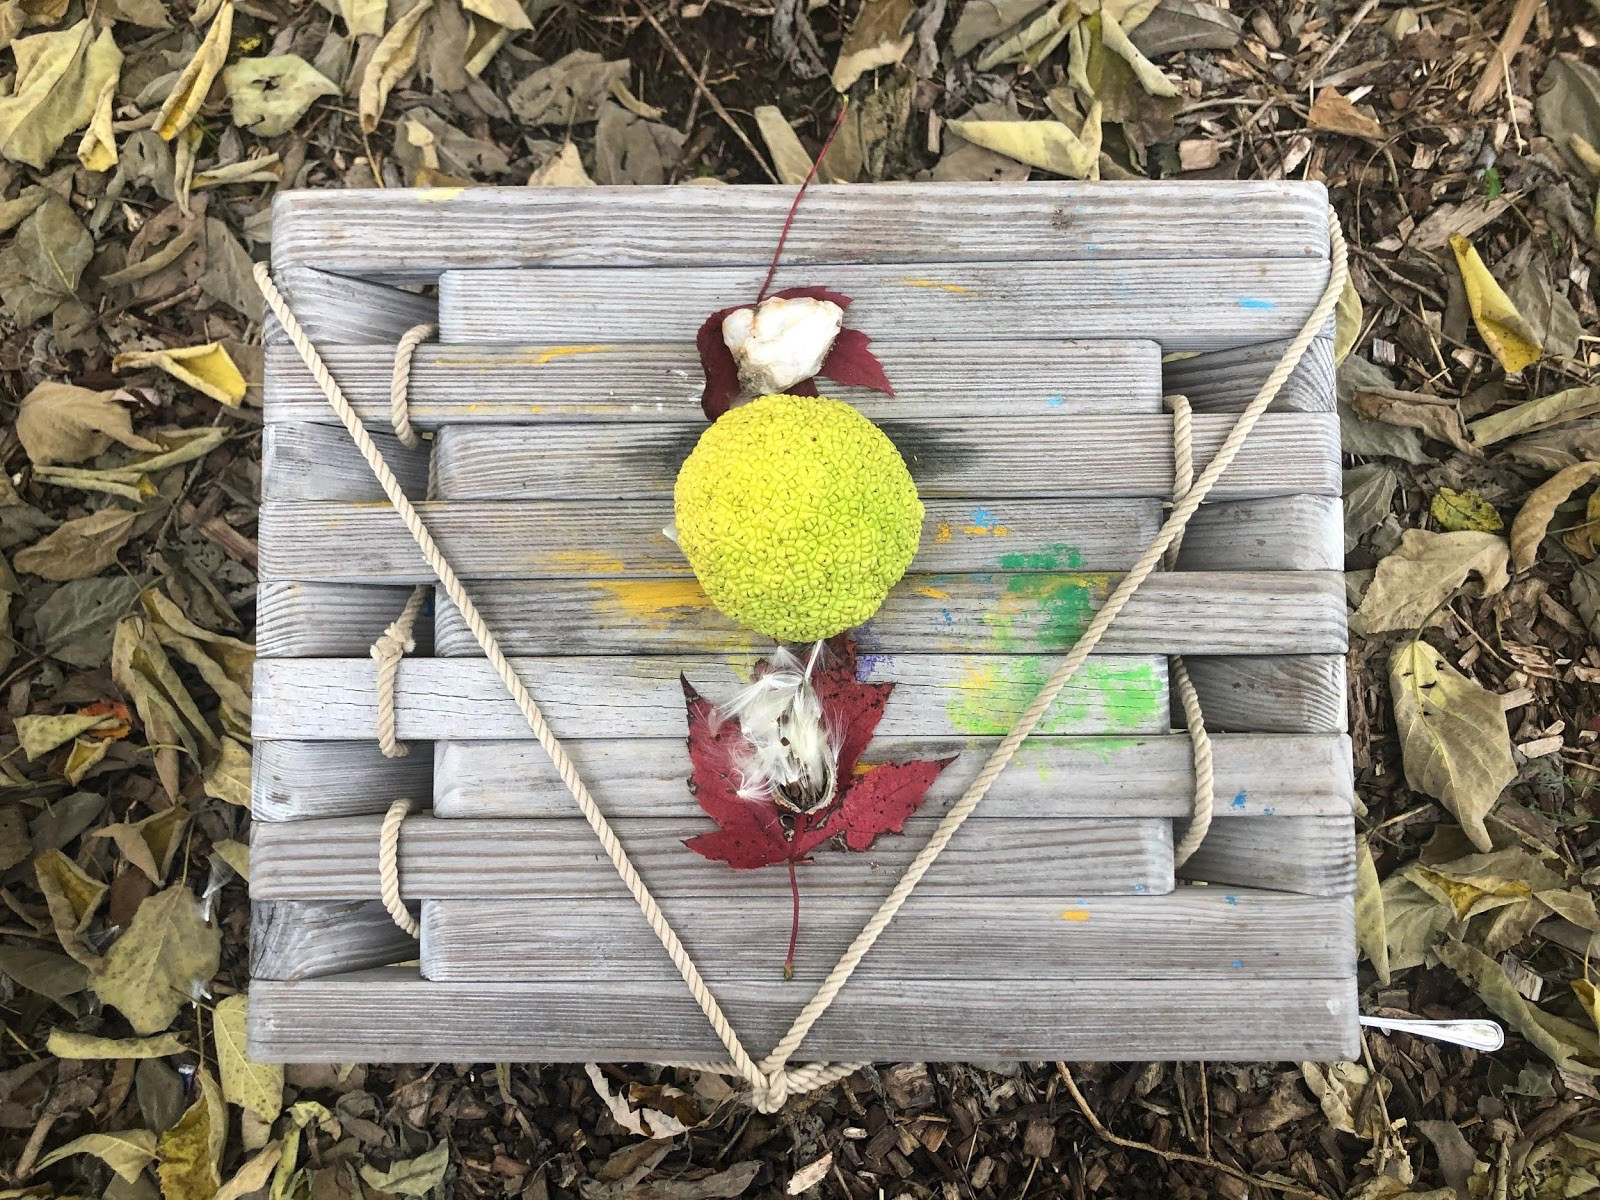 A photo of the finished found altar with an O'Sage orange, purple leaves, cotton pods, and tied rope on a wooden stand.